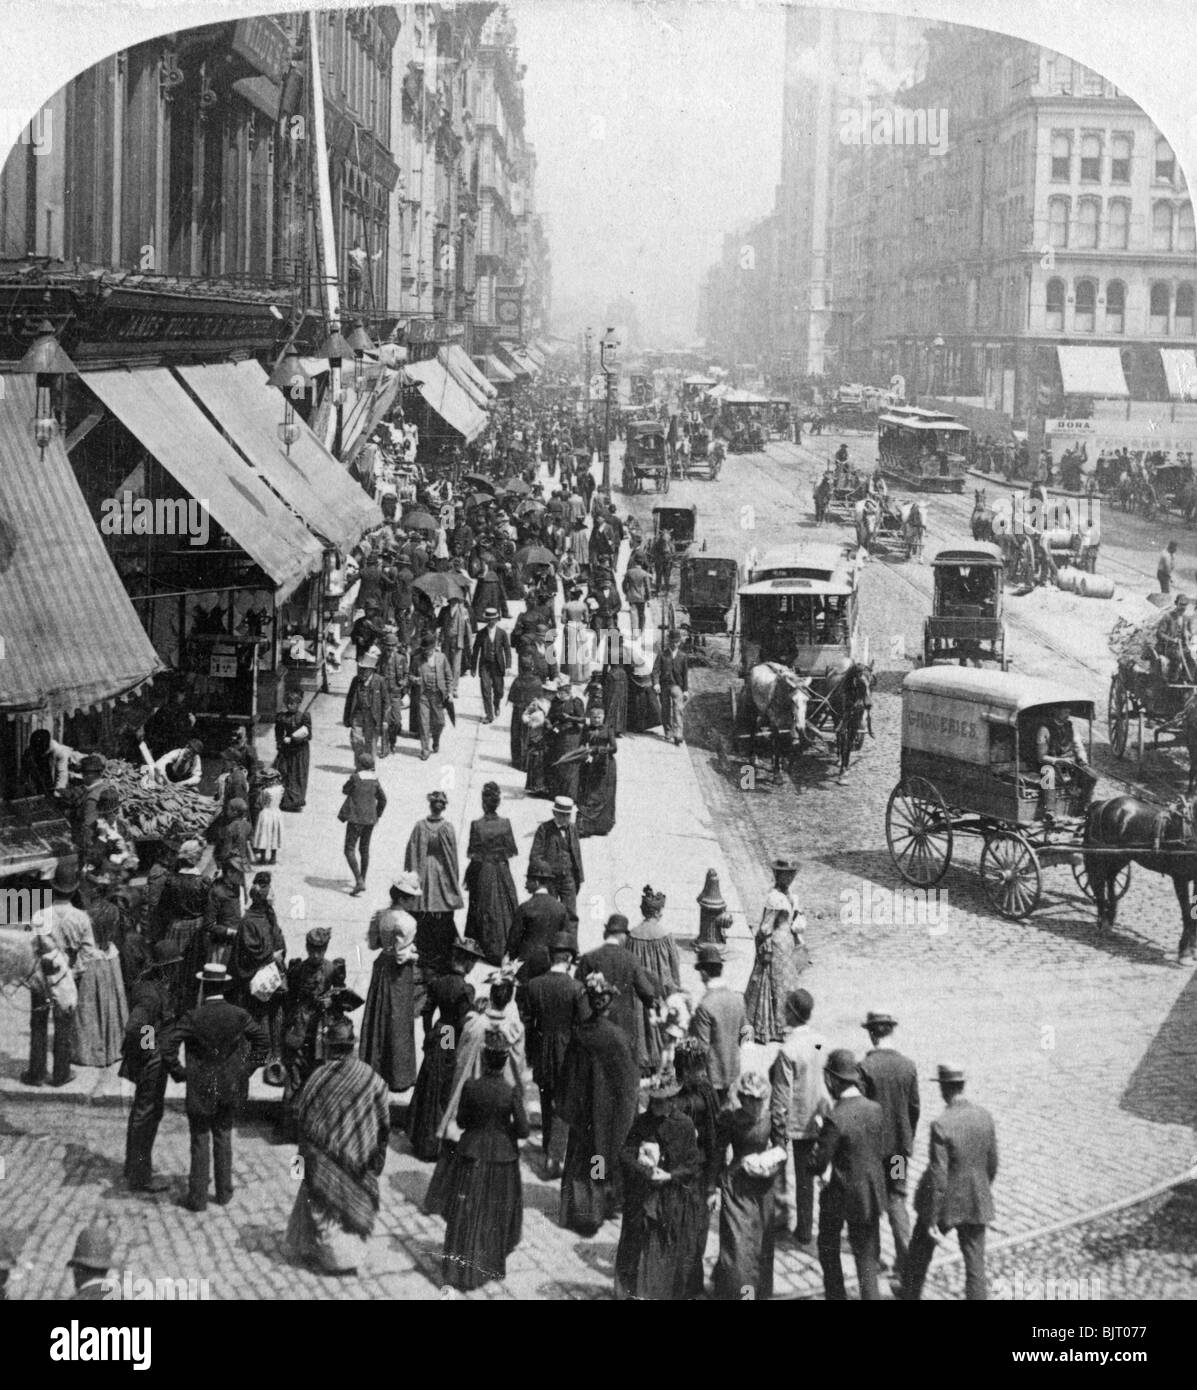 A street scene in Chicago, Illinois, USA, 1896.